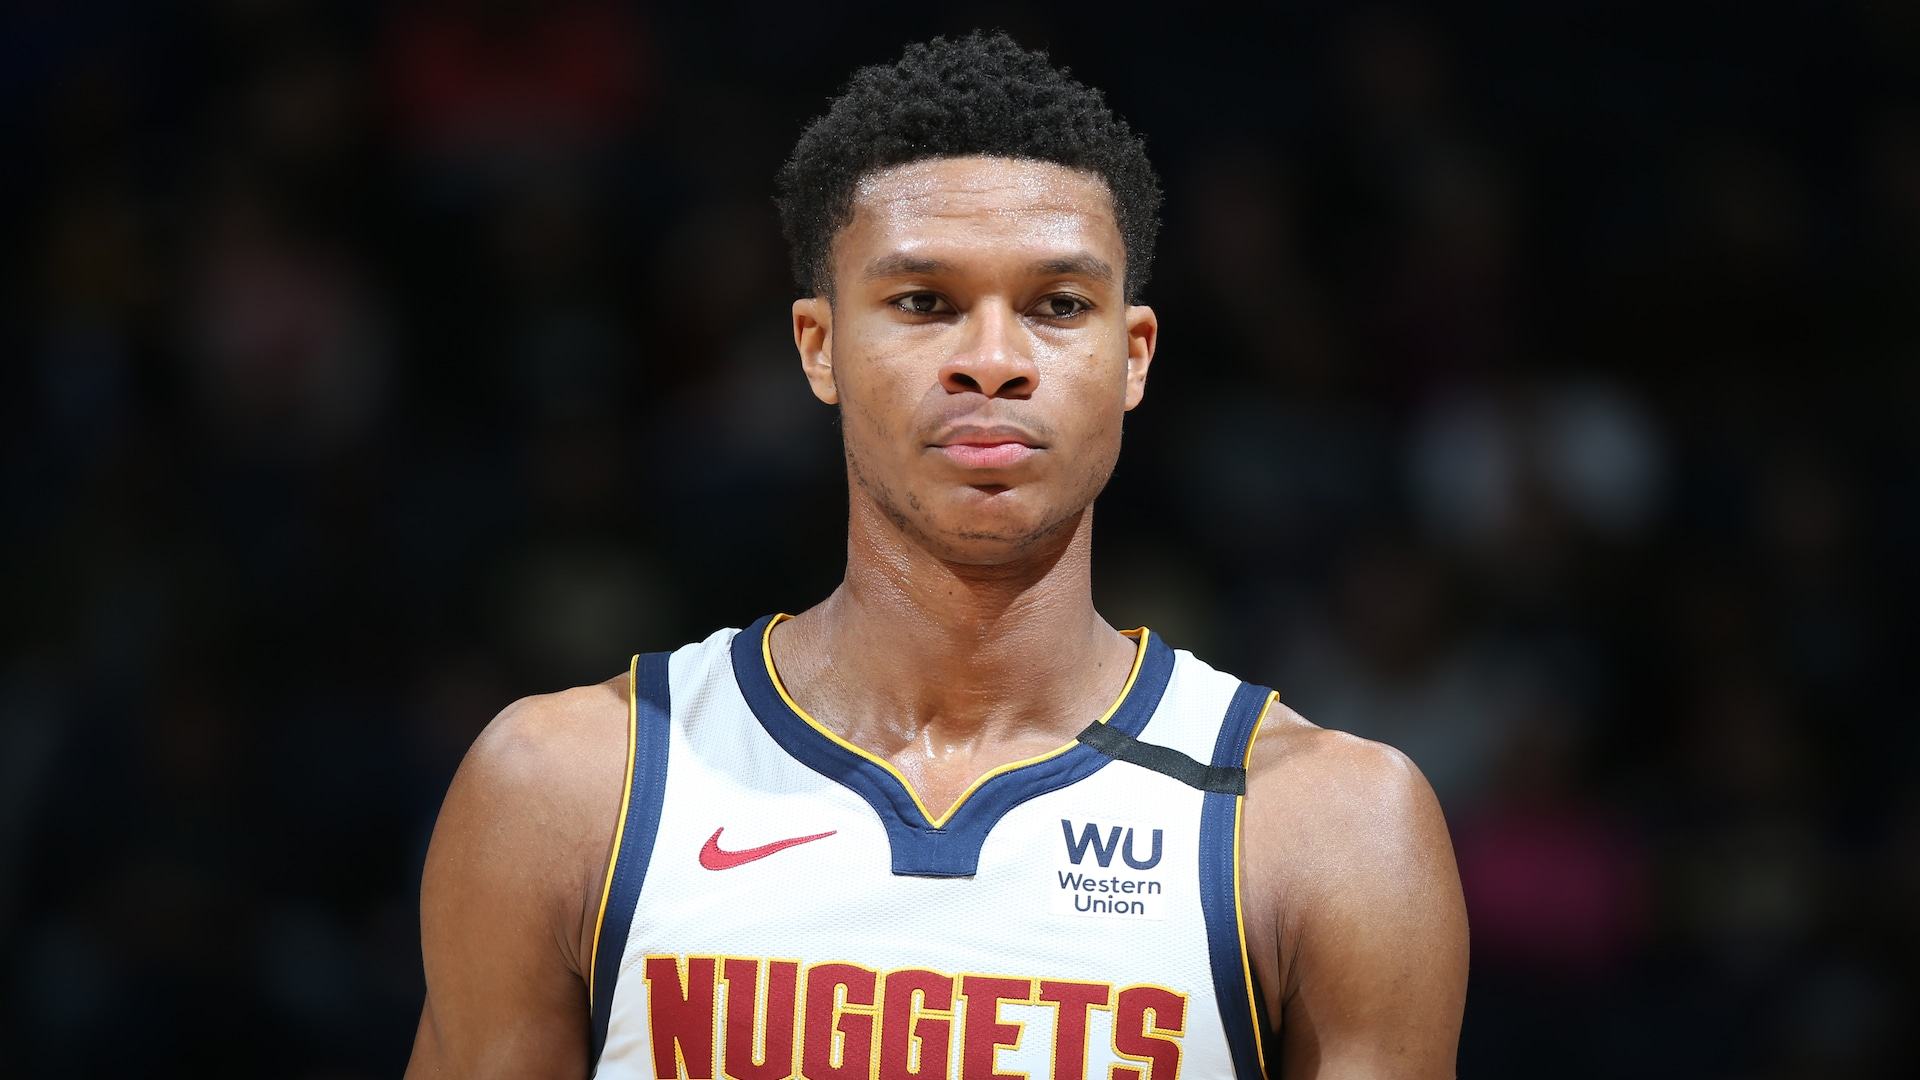 Nuggets sign P.J. Dozier to multi-year contract